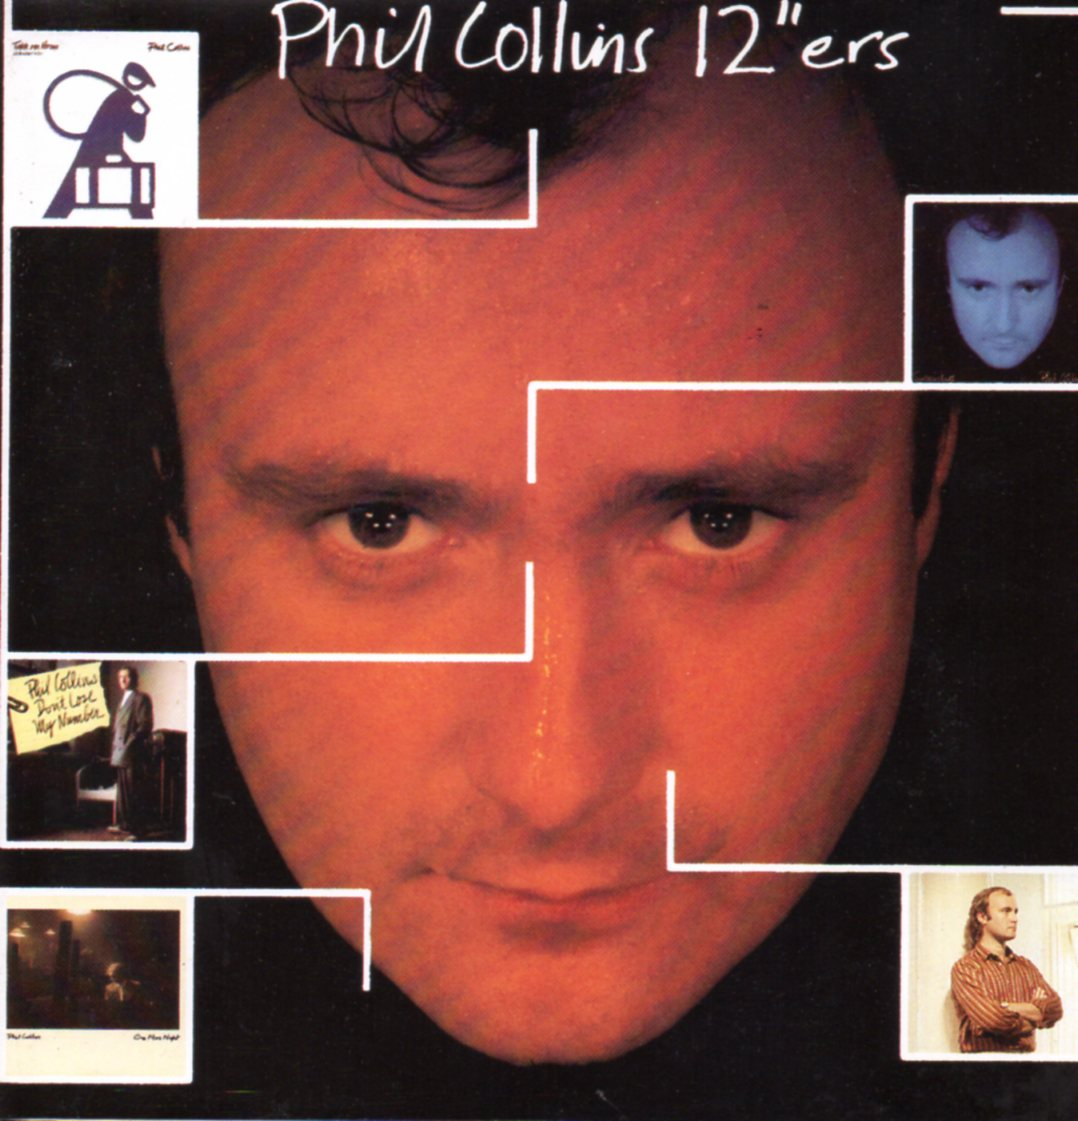 PHIL COLLINS - 12''ers - CD